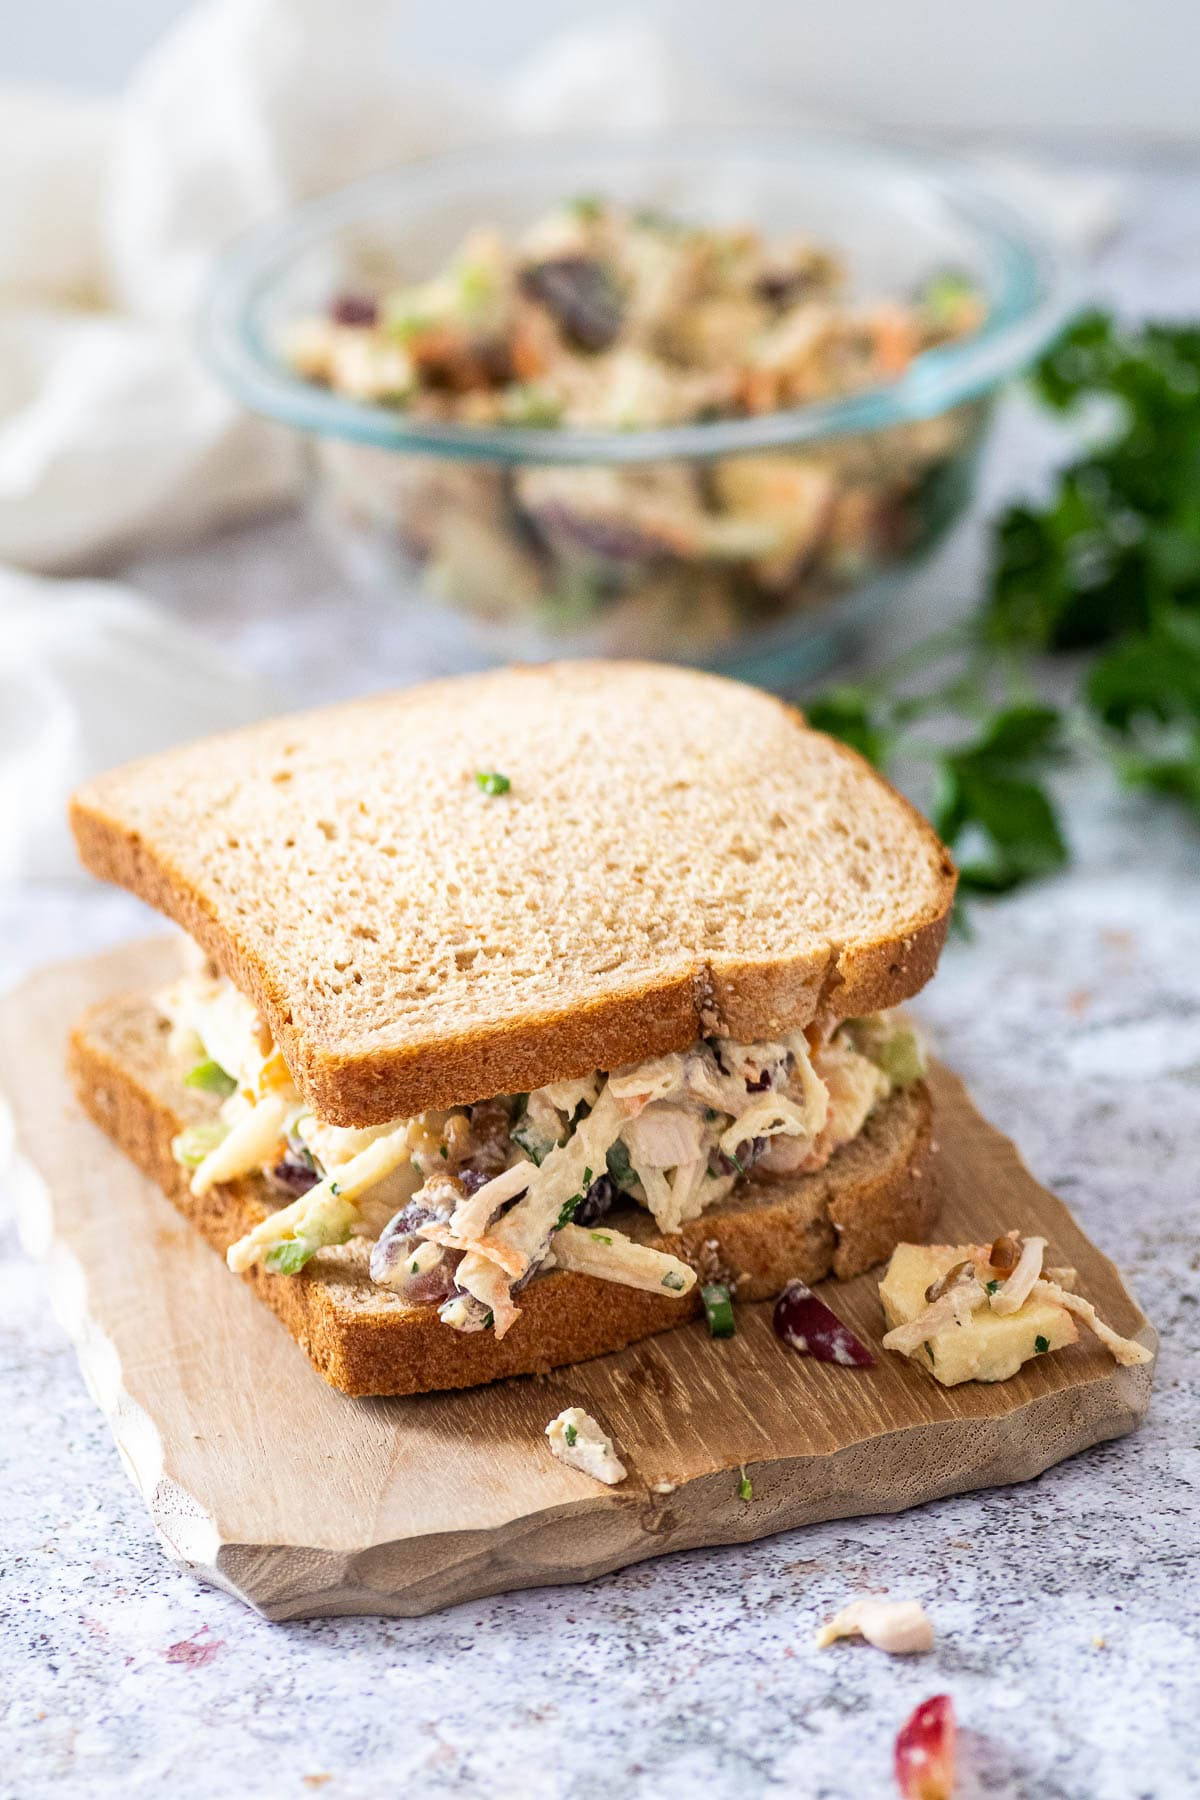 Chicken salad sandwich in the foreground and the bowl blurred in the background